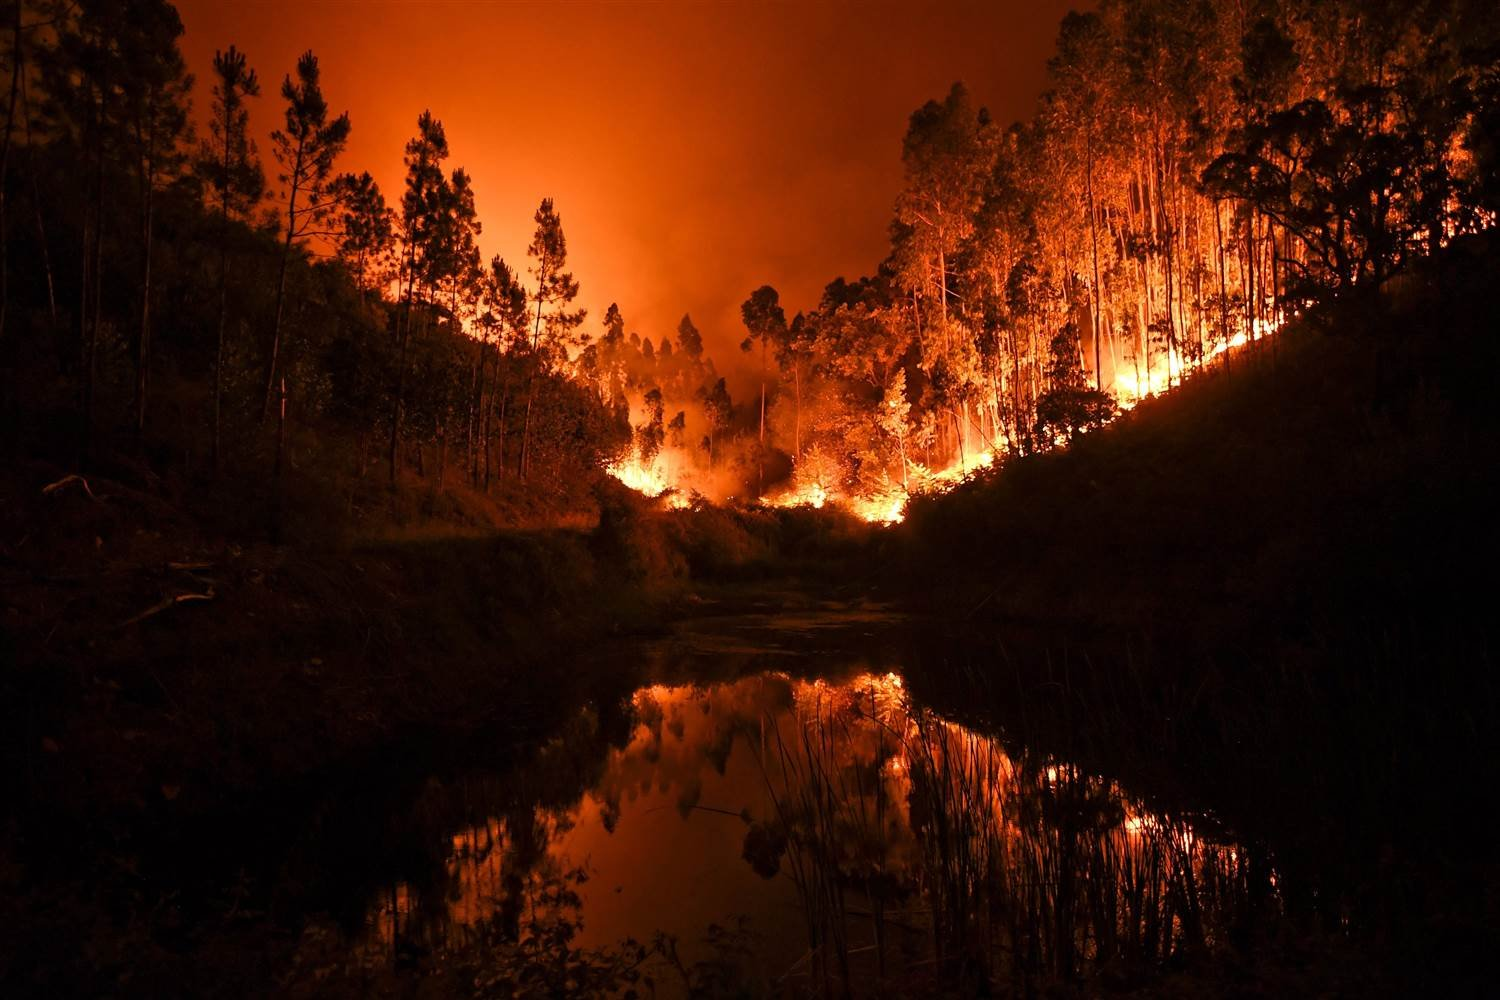 A wildfire is reflected in a stream at Penela, Coimbra, central Portugal. PATRICIA DE MELO MOREIRA / AFP - Getty Images